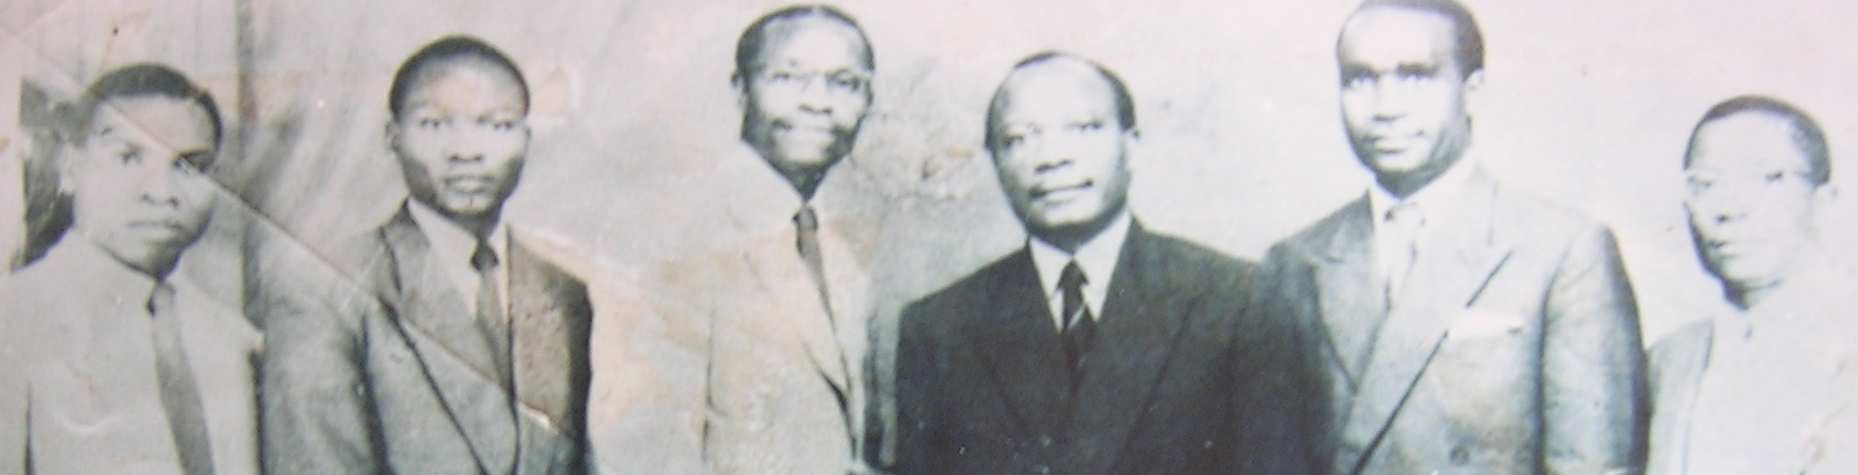 THE ROOTS OF AUTHORITARIANISM 19 Photo 2 African National Congress Officials, 1956. Left to right: R.C. Kamanga (Vice-Treasurer), E.M. Liso (Vice-President), S.M. Kapwepwe (Treasurer-General), H.M. Nkumbula (National President), K.